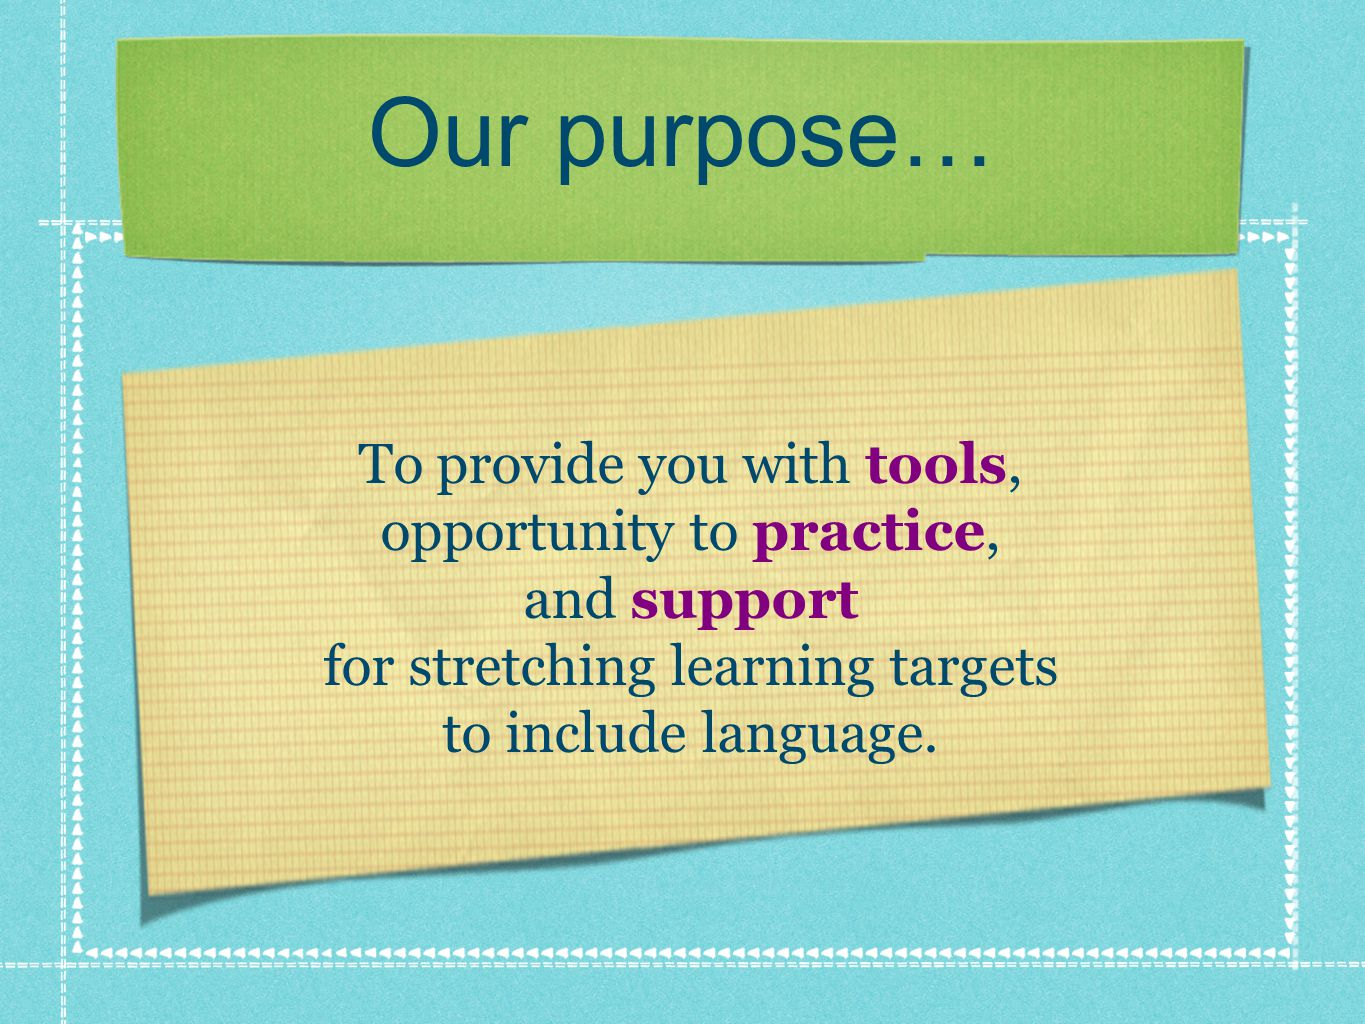 Our purpose… To provide you with tools, opportunity to practice, and support for stretching learning targets to include language.